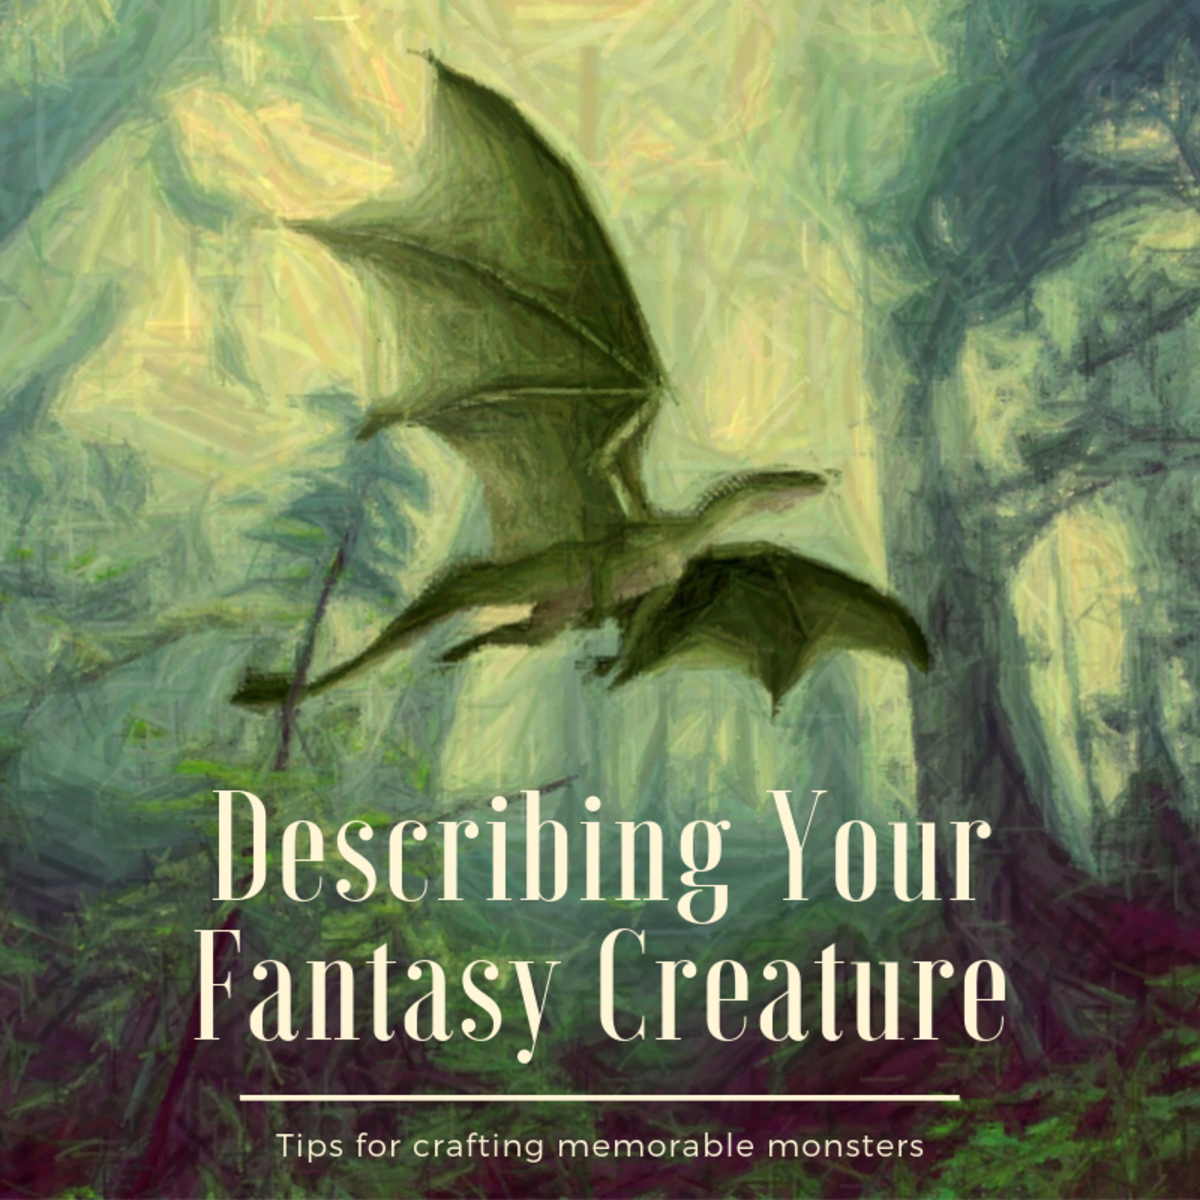 How to Describe a Fantasy Creature